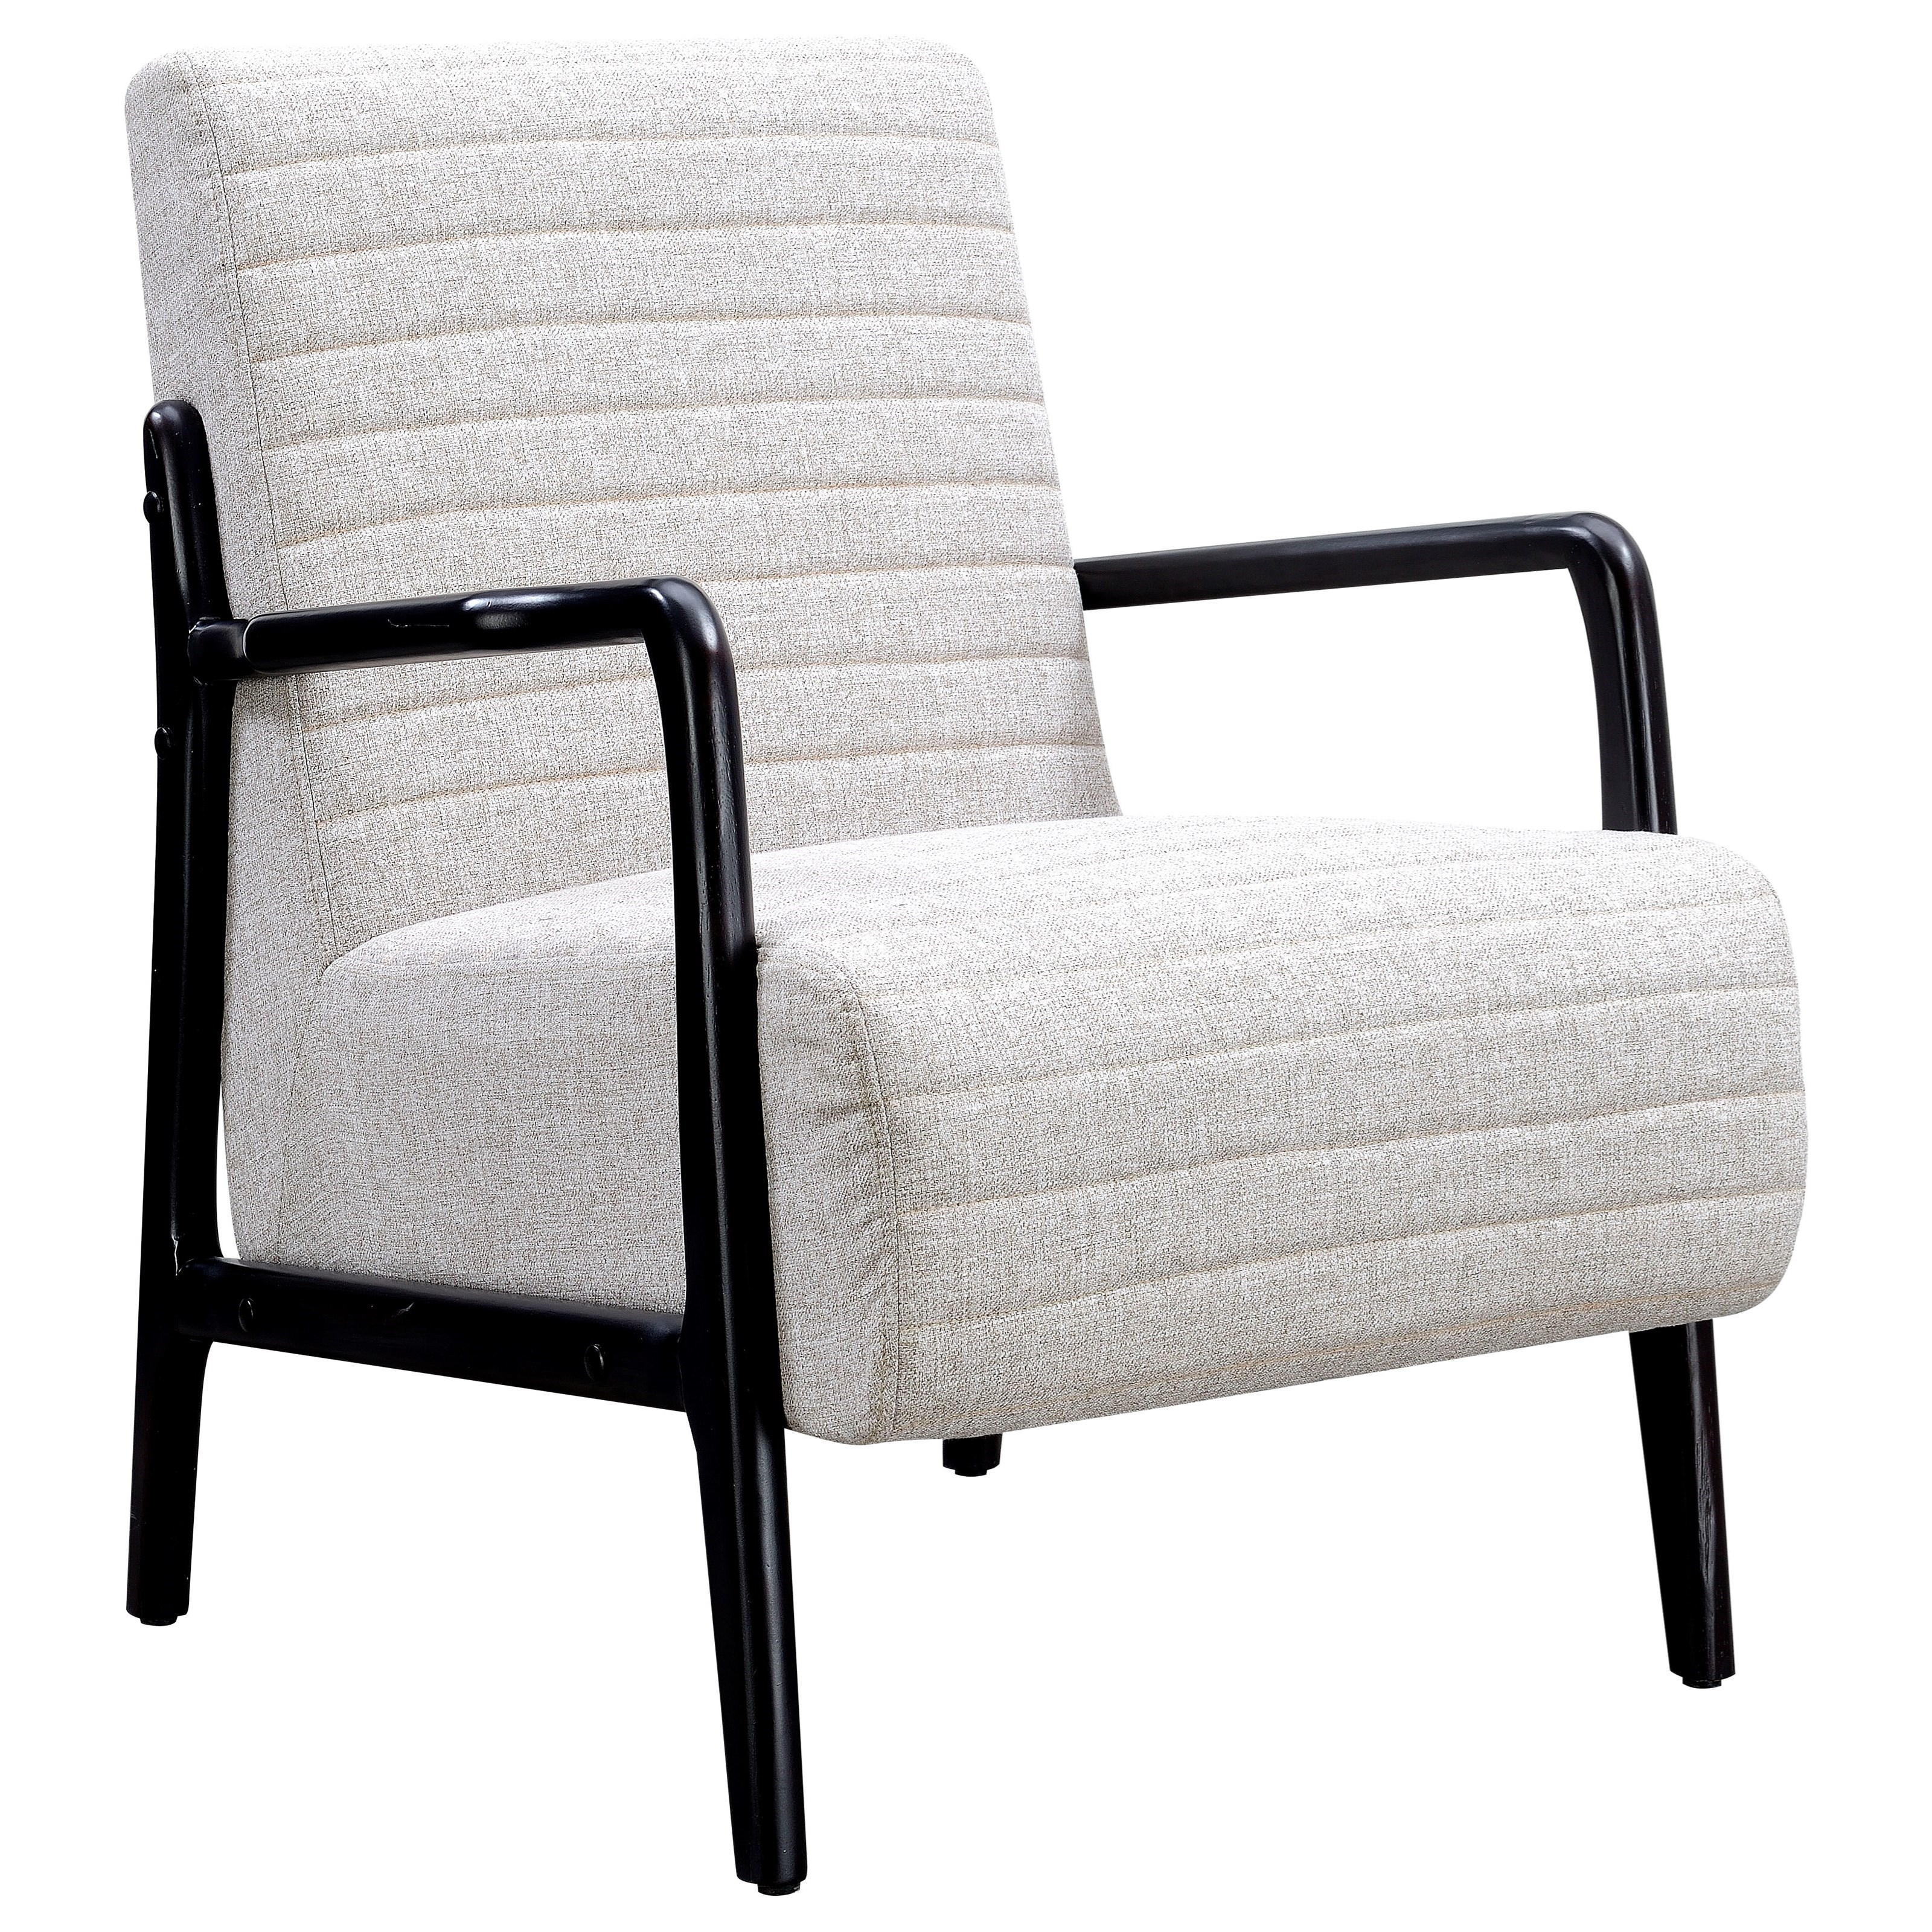 Zola Upholstered Accent Chair by Emerald at Northeast Factory Direct